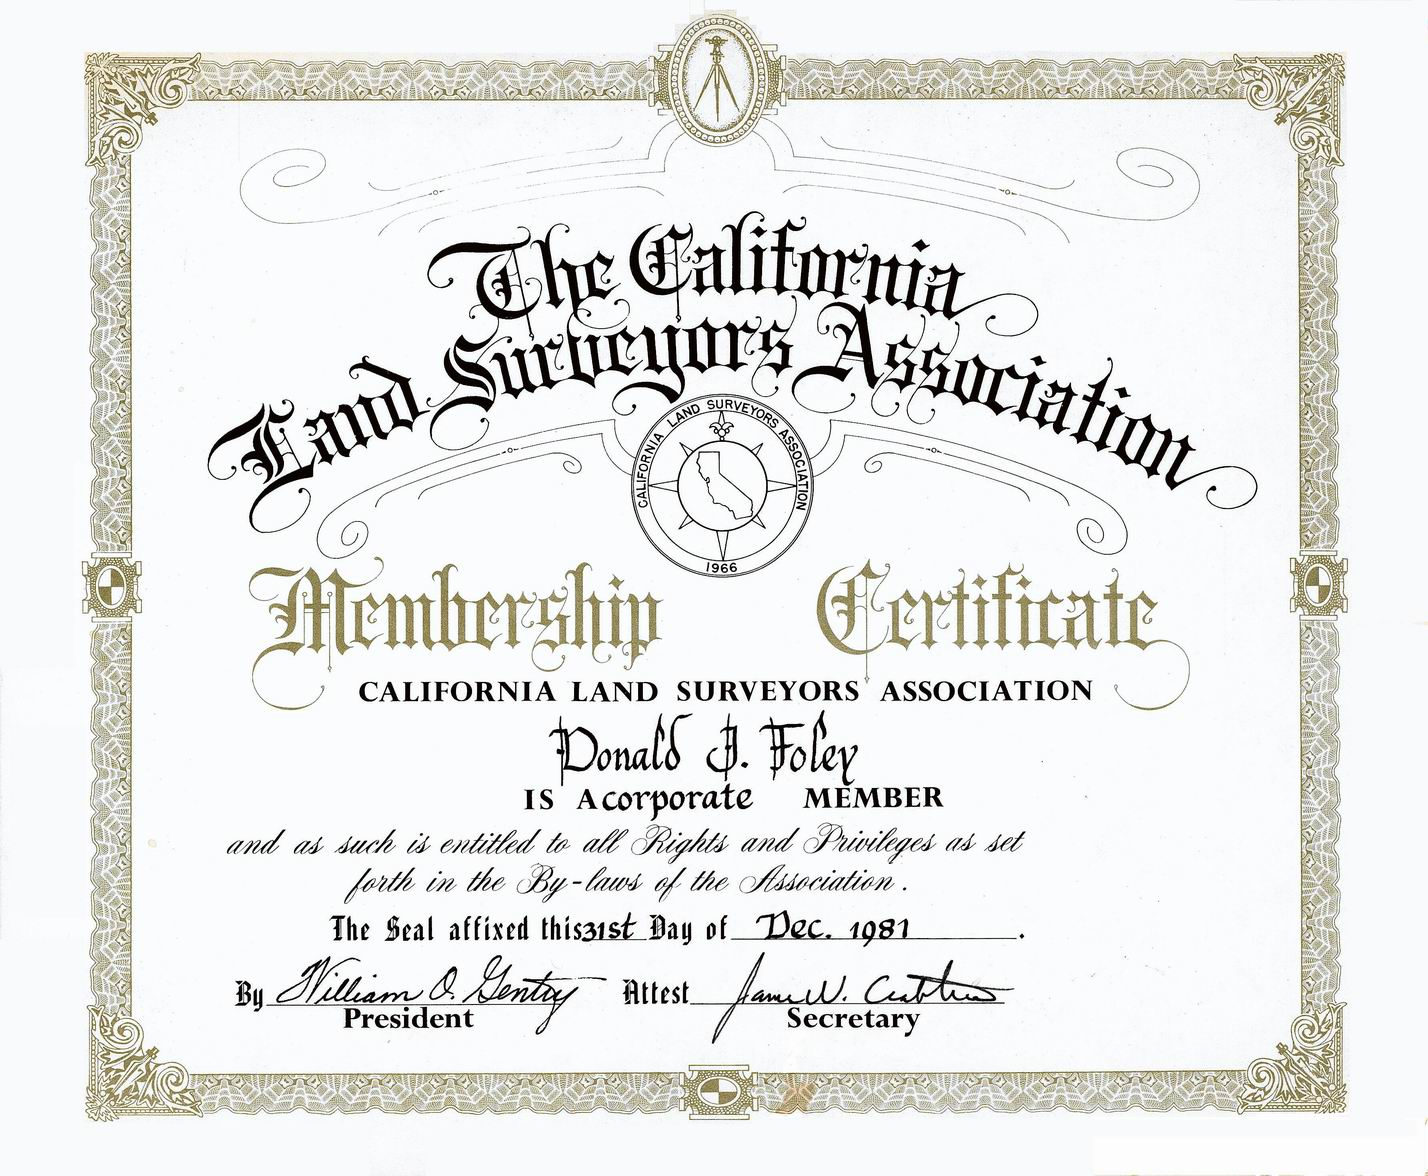 Donald don james foley 78 don became a corporate member of the california land surveyors association on december 31 1981 certificate yelopaper Gallery